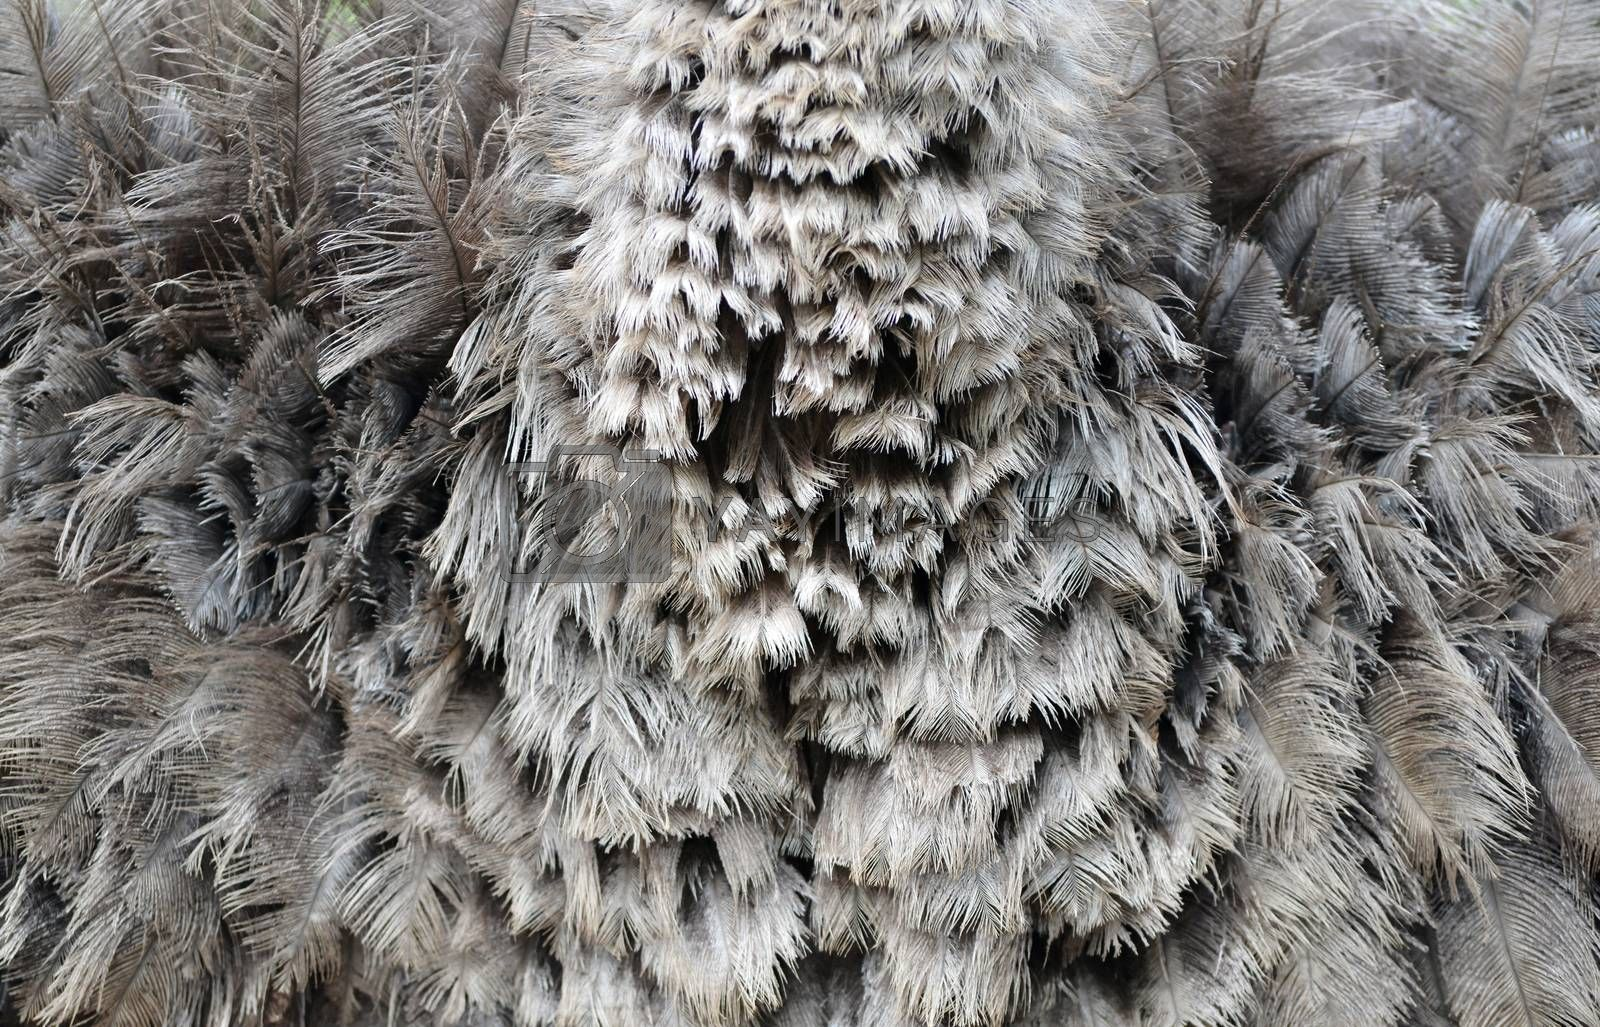 Royalty free image of ostrich feather by anankkml